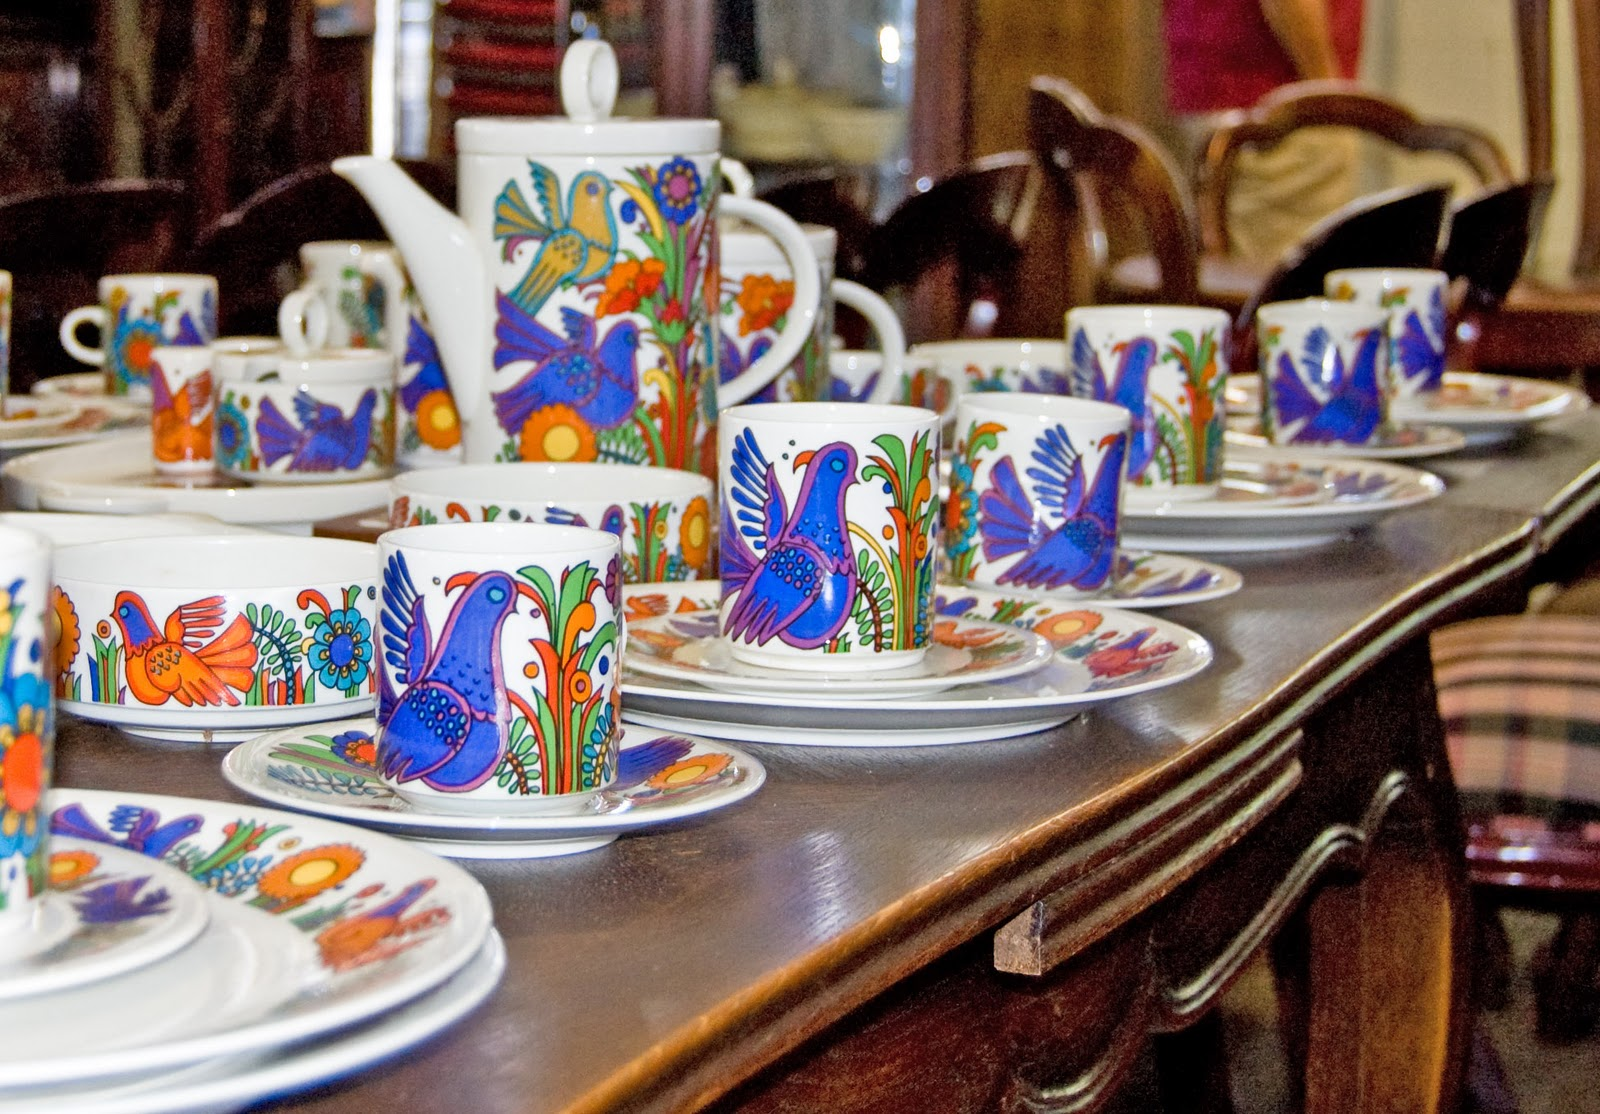 Villeroy boch on pinterest vintage tableware - Boch and villeroy ...